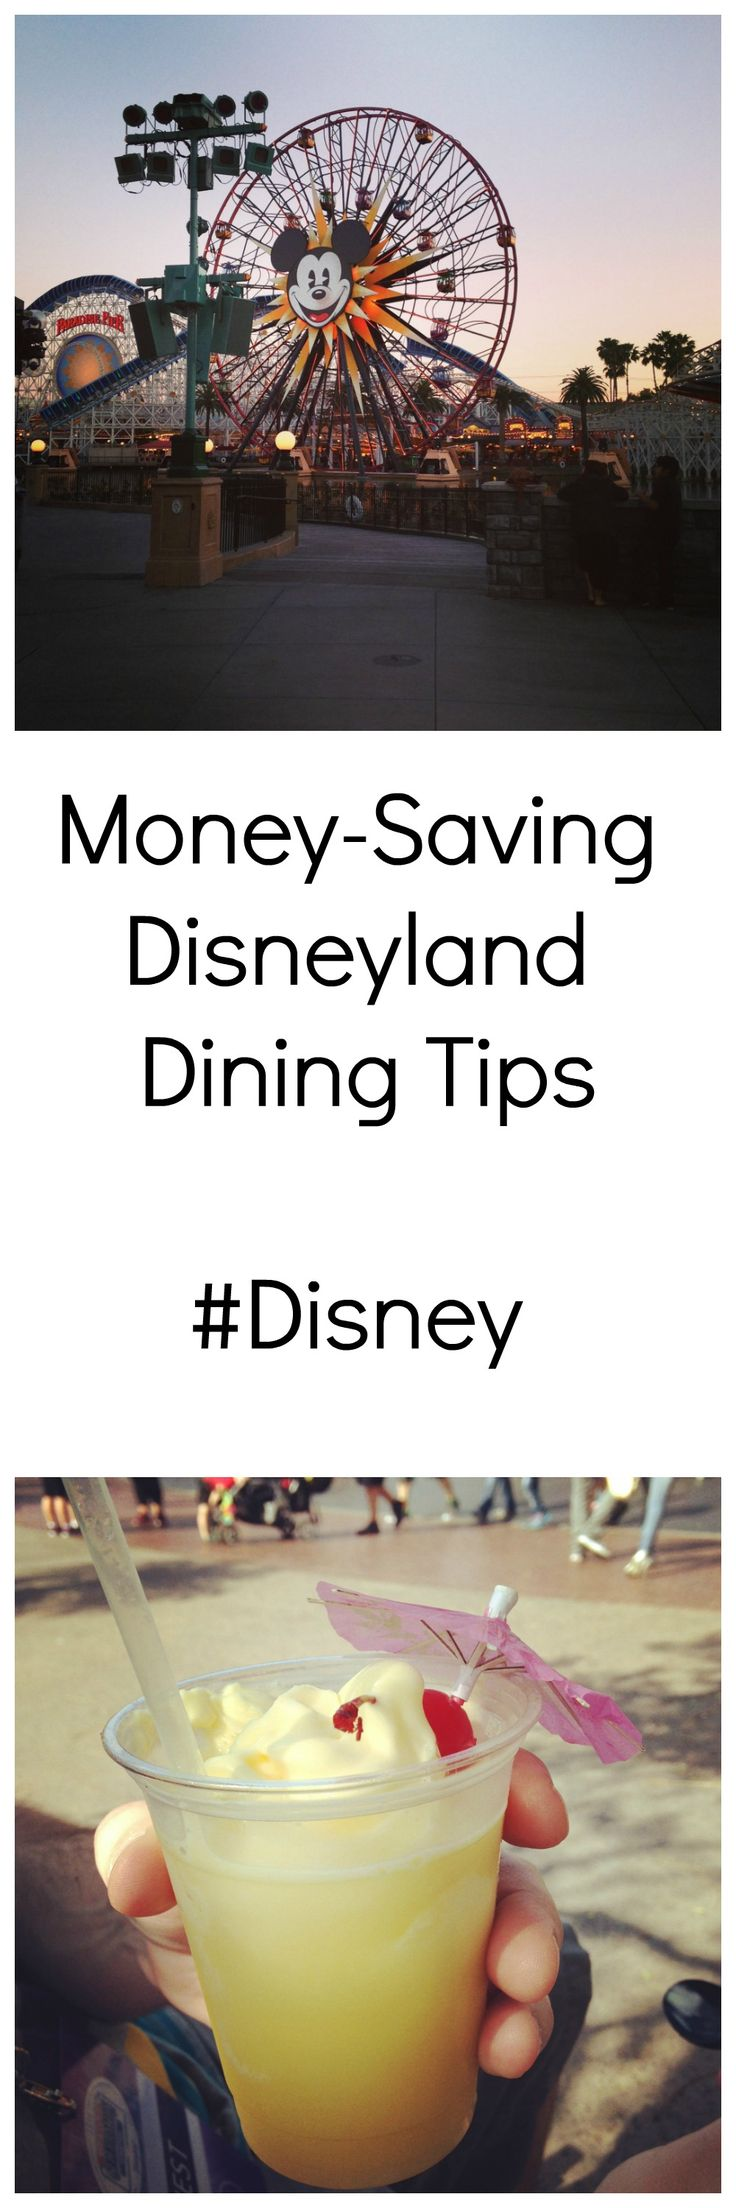 """You CAN eat on a budget at Disneyland! Tried and true tips from a no-frills traveler. Favorite """"cheap"""" park restaurants and more money-saving tips! #Disneyland #Disney #DisneyMom #travel"""